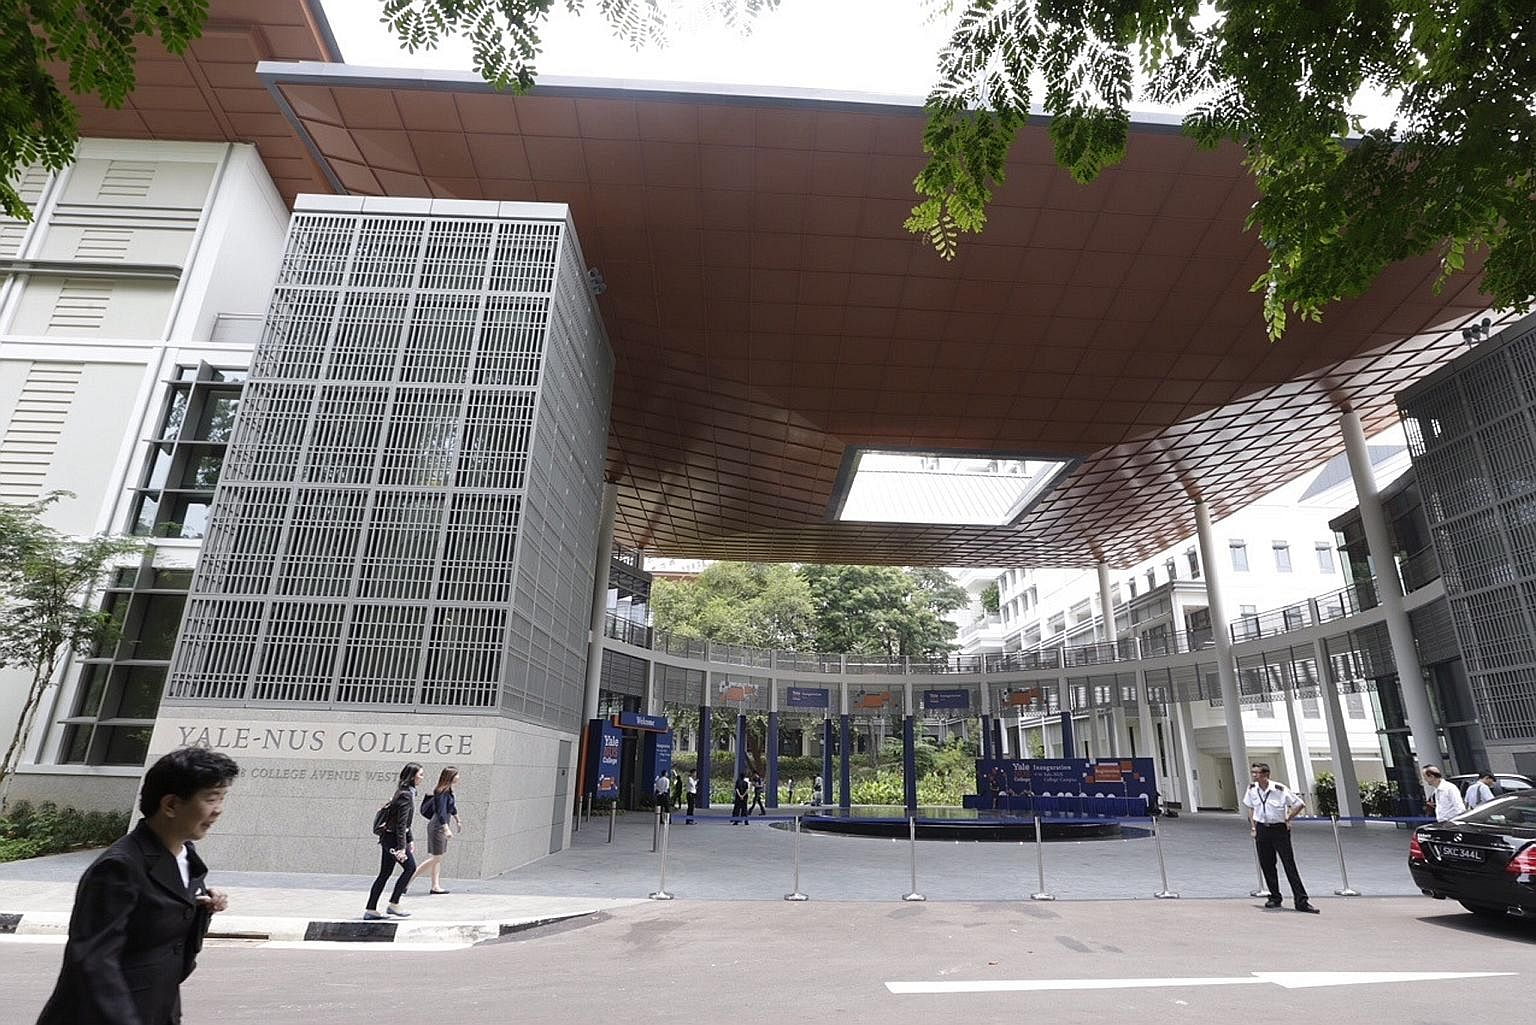 yale nus adopts latin honours system education news top stories yale nus adopts latin honours system education news top stories the straits times